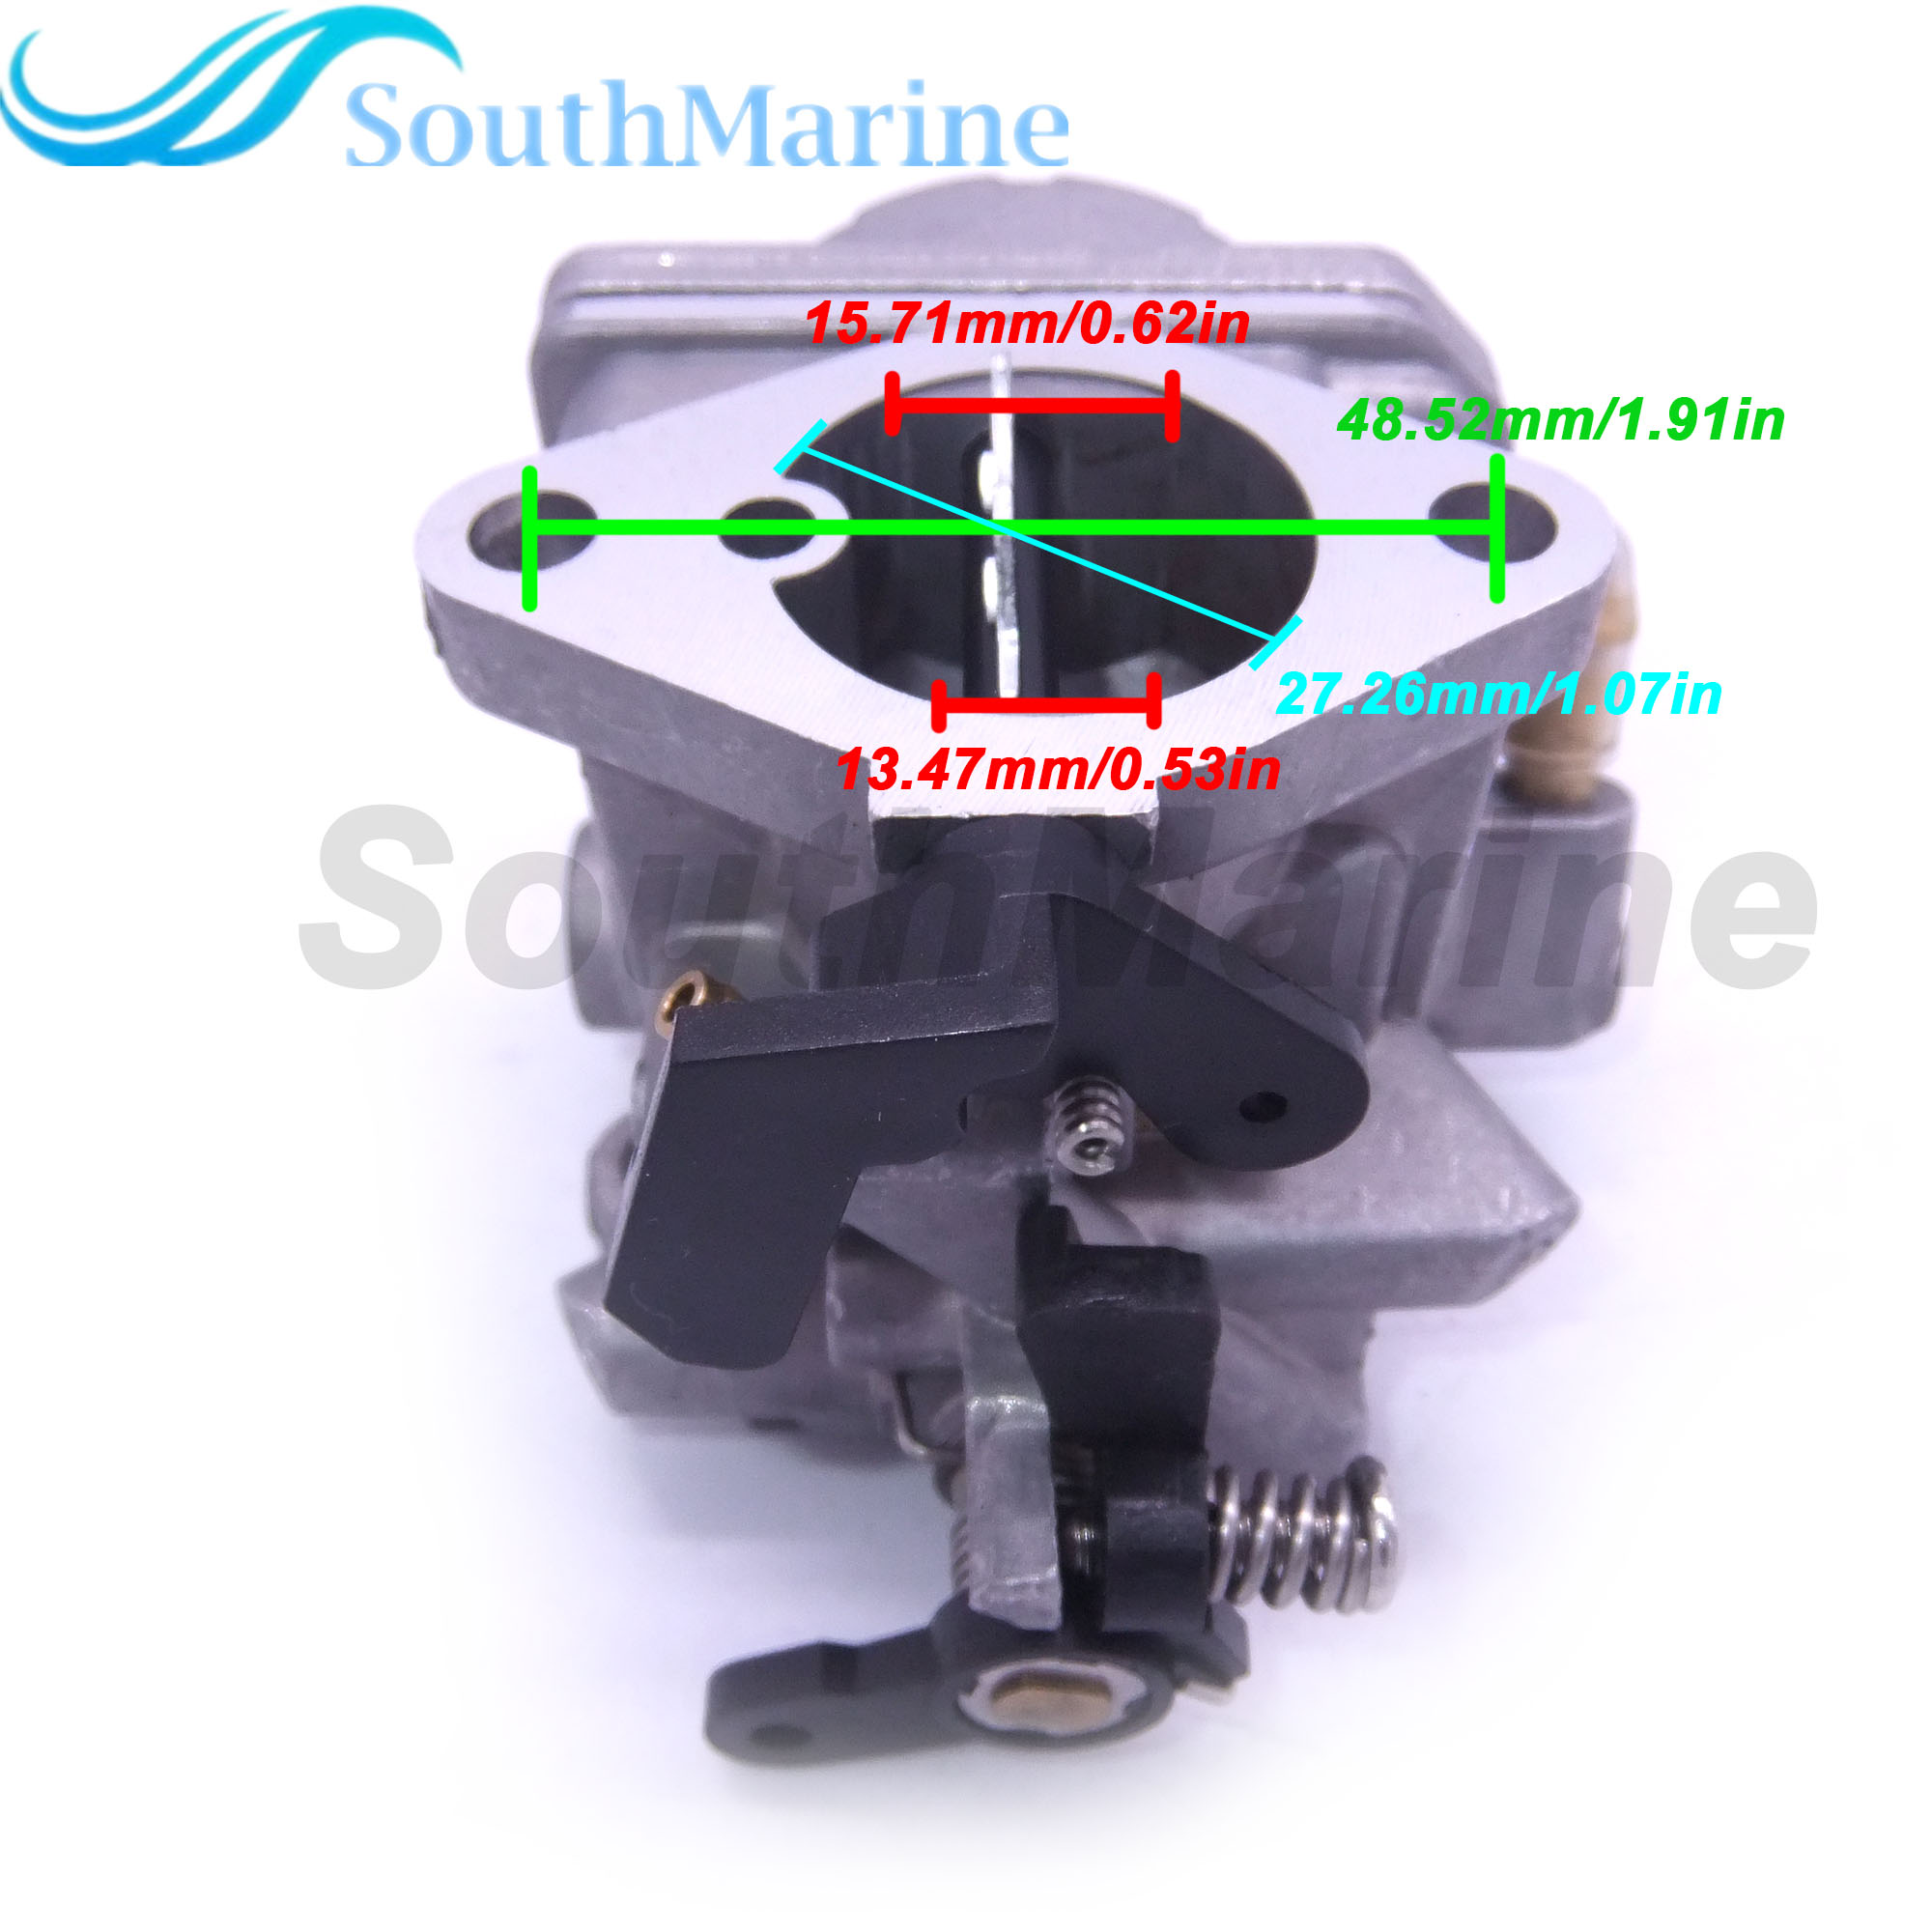 Image 2 - 3R4 03200 0 3R4 03200 1 3R4032000M 3R4032001M Carburetor Assy for Tohatsu Nissan 4 stroke 6HP MFS6 NFS6 A2 B Outboard Motor-in Boat Engine from Automobiles & Motorcycles